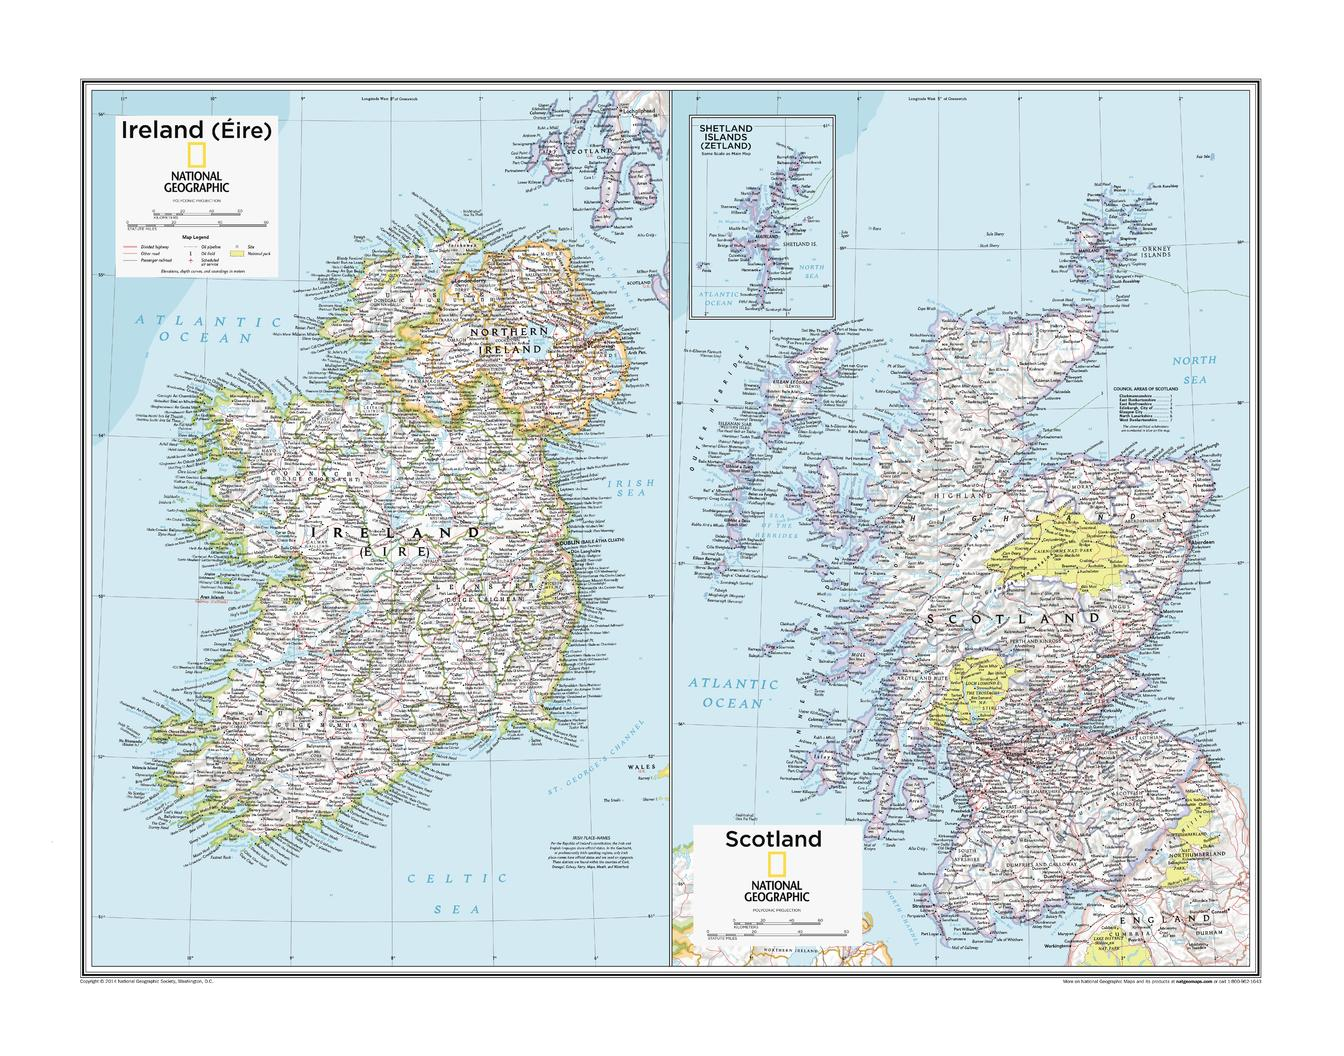 Ireland (Éire) and Scotland